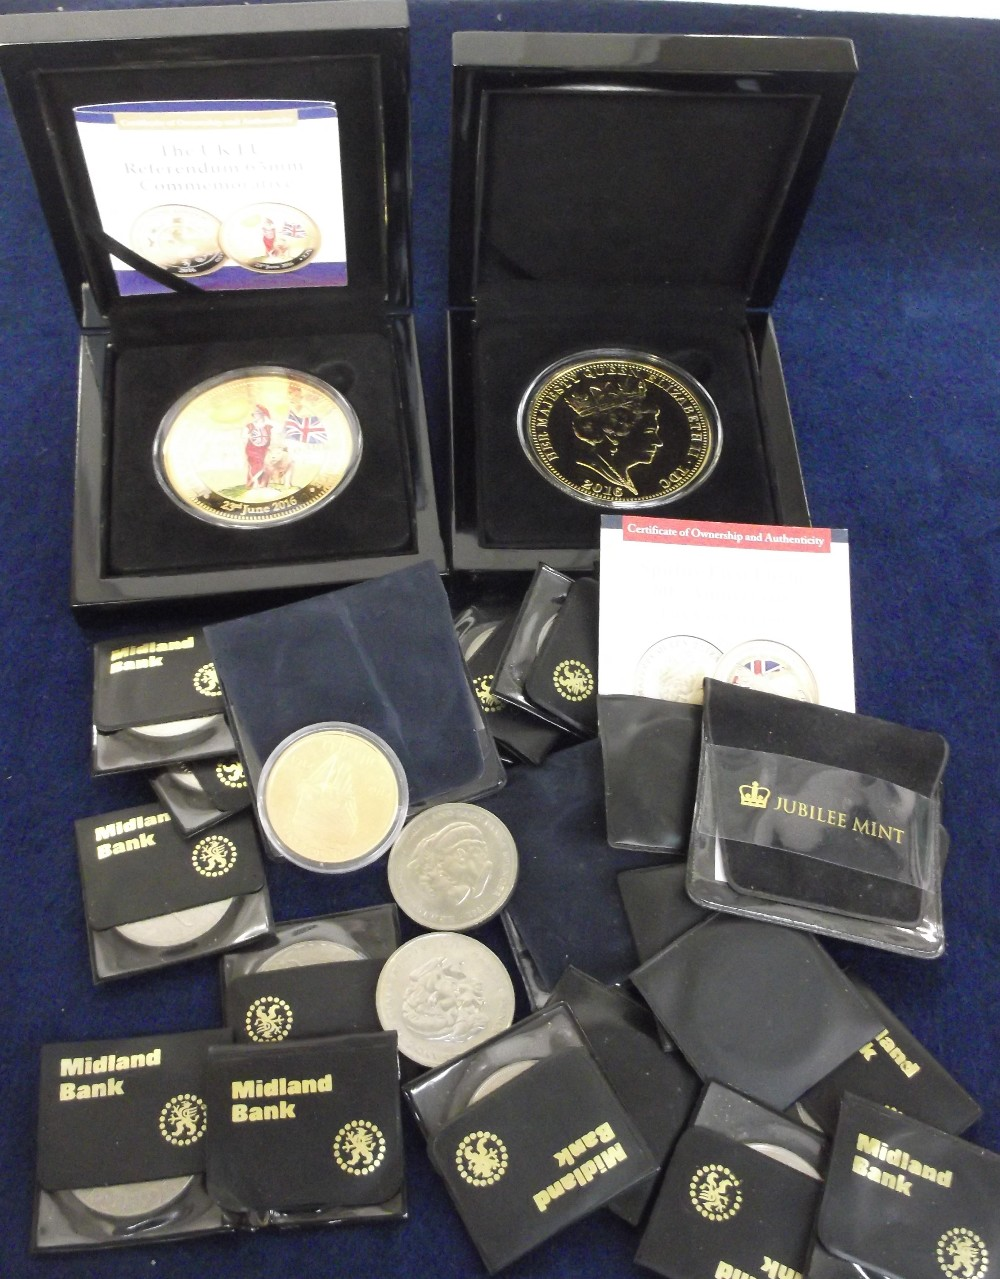 Lot 19 - Coins, two, limited edition, gold plated Bradford Exchange boxed commemorative coins, Spitfire First